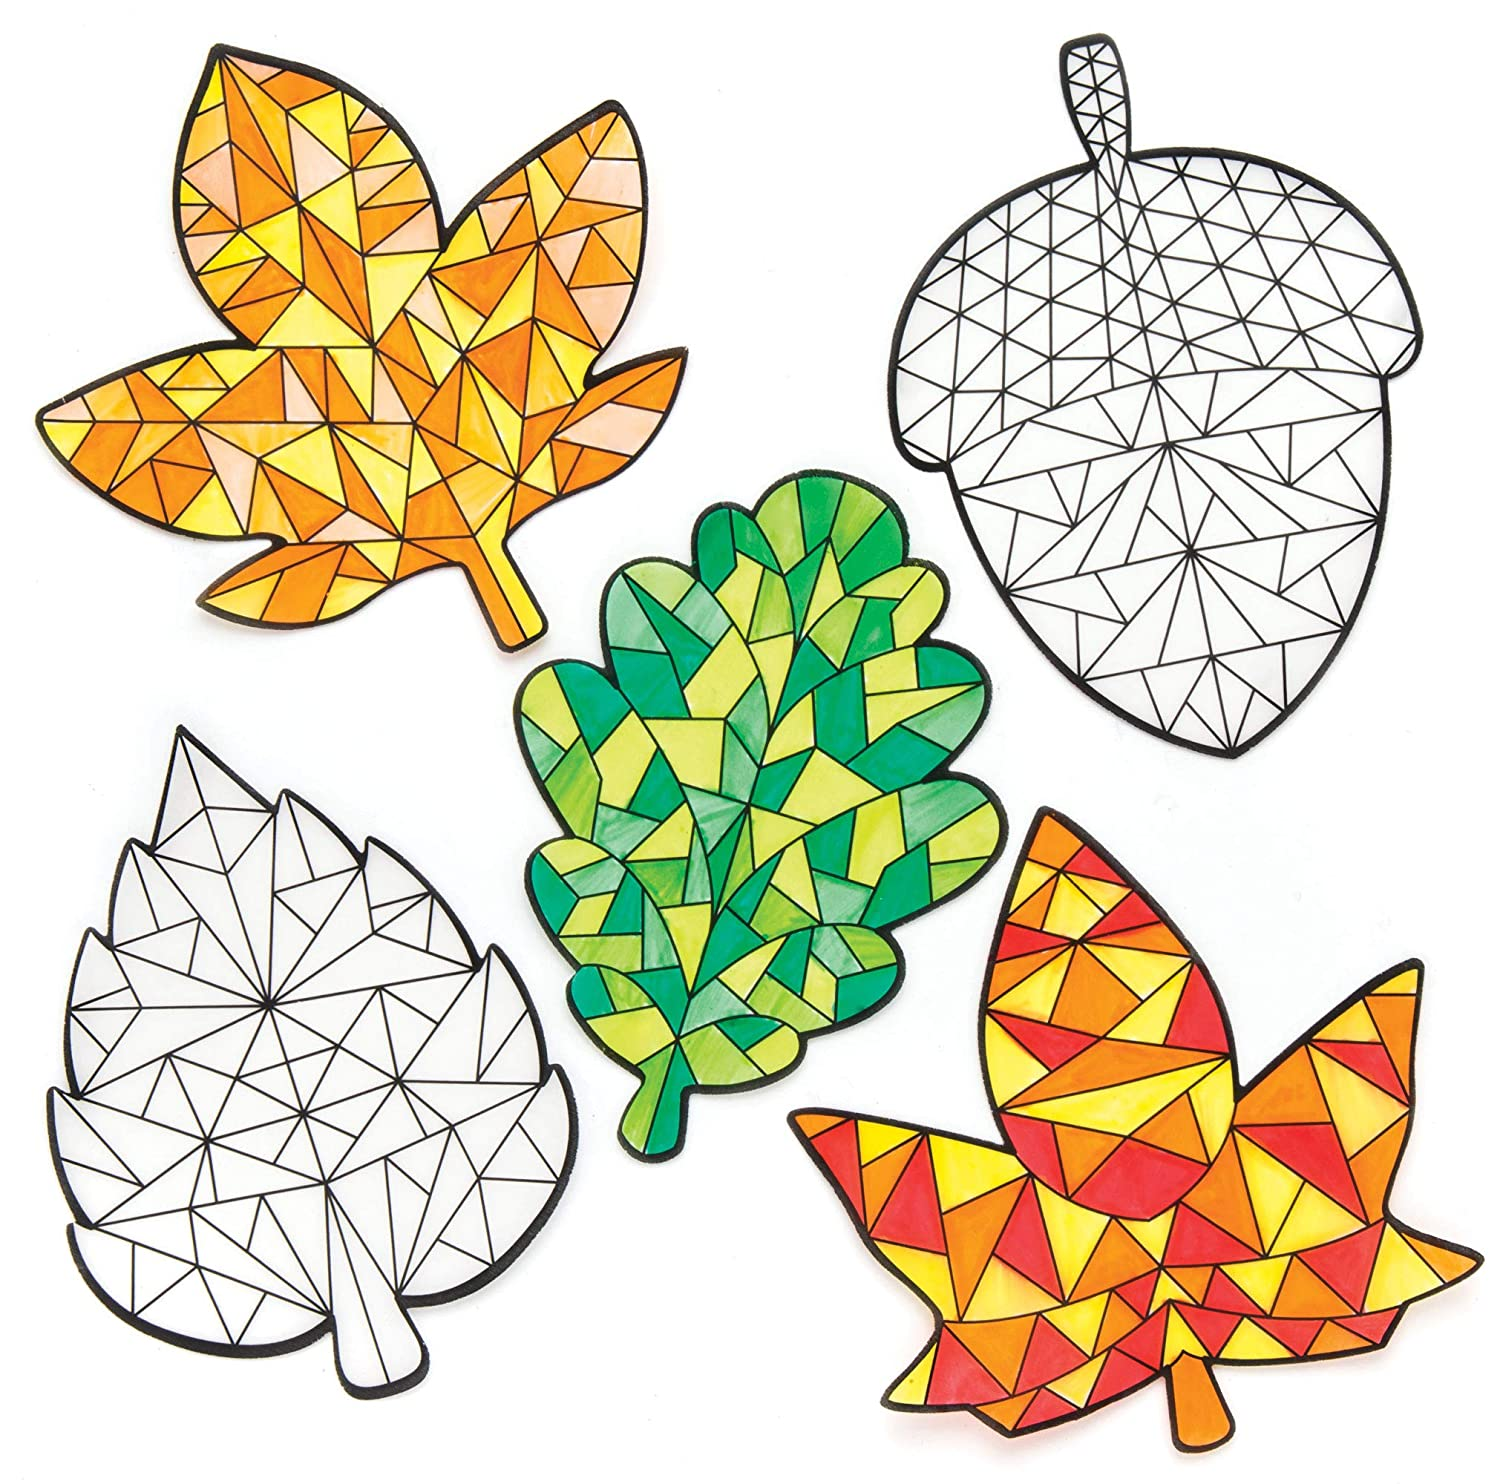 Suncatcher Stained Glass Effect for Children to Make and Display Baker Ross AR646 Autumn Color in Window Decorations Pack of 12